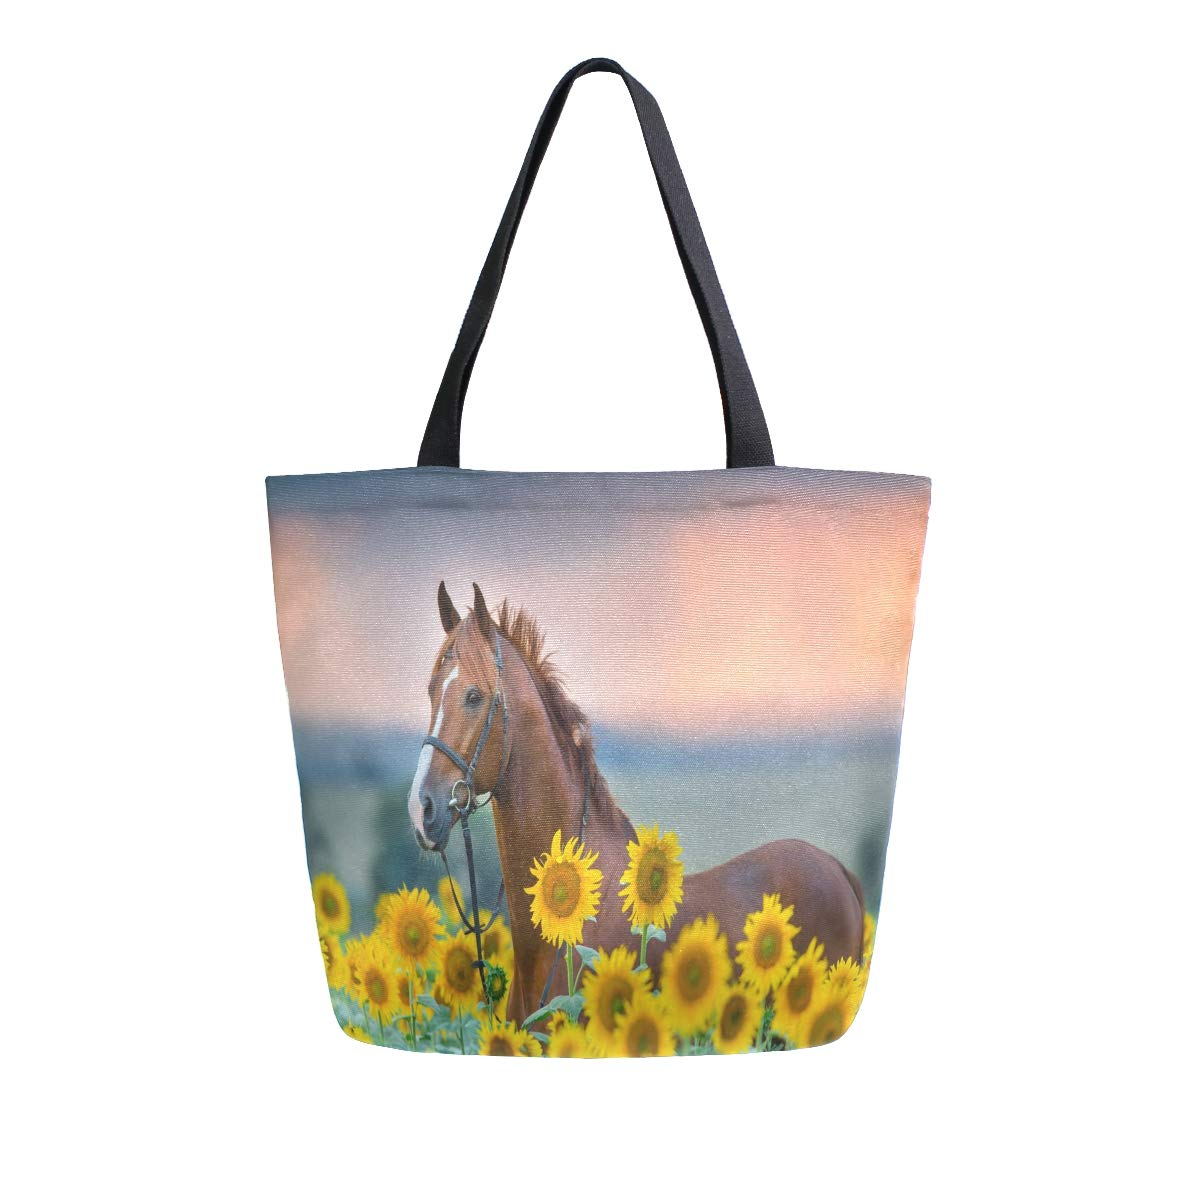 ZZXXB Sunflower Horse Reusable Grocery Shopping Bag Heavy Duty Canvas Tote Bag Large Collapsible Washable Handbag Shoulder for Women